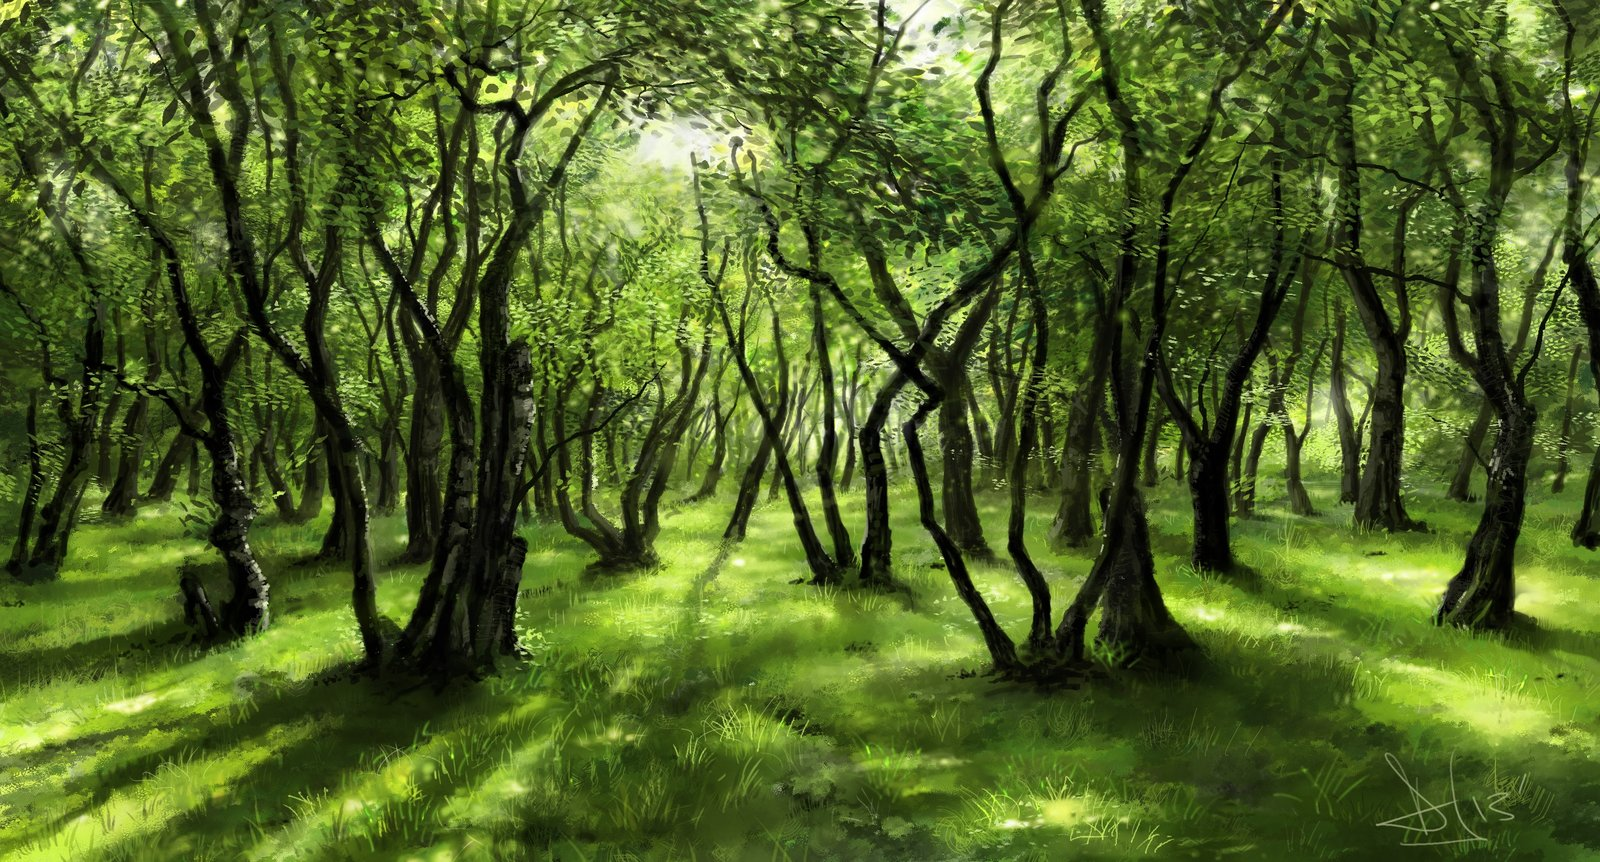 Green forest study (2)